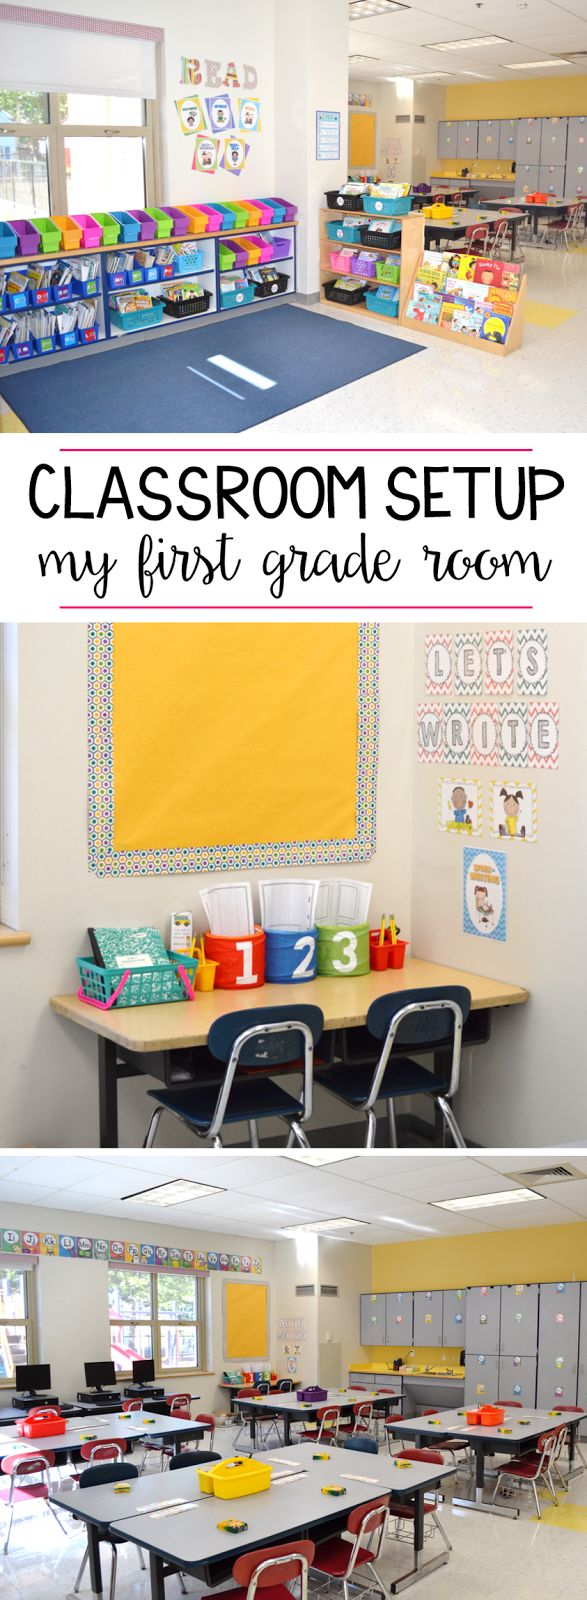 I love the chance to take a peek into classrooms around the world so I thought I would take a minute and share my classroom with you! My classroom walls are a bit bare now since I save a LOT of my wall space for student work and anchor charts we make together, but I …